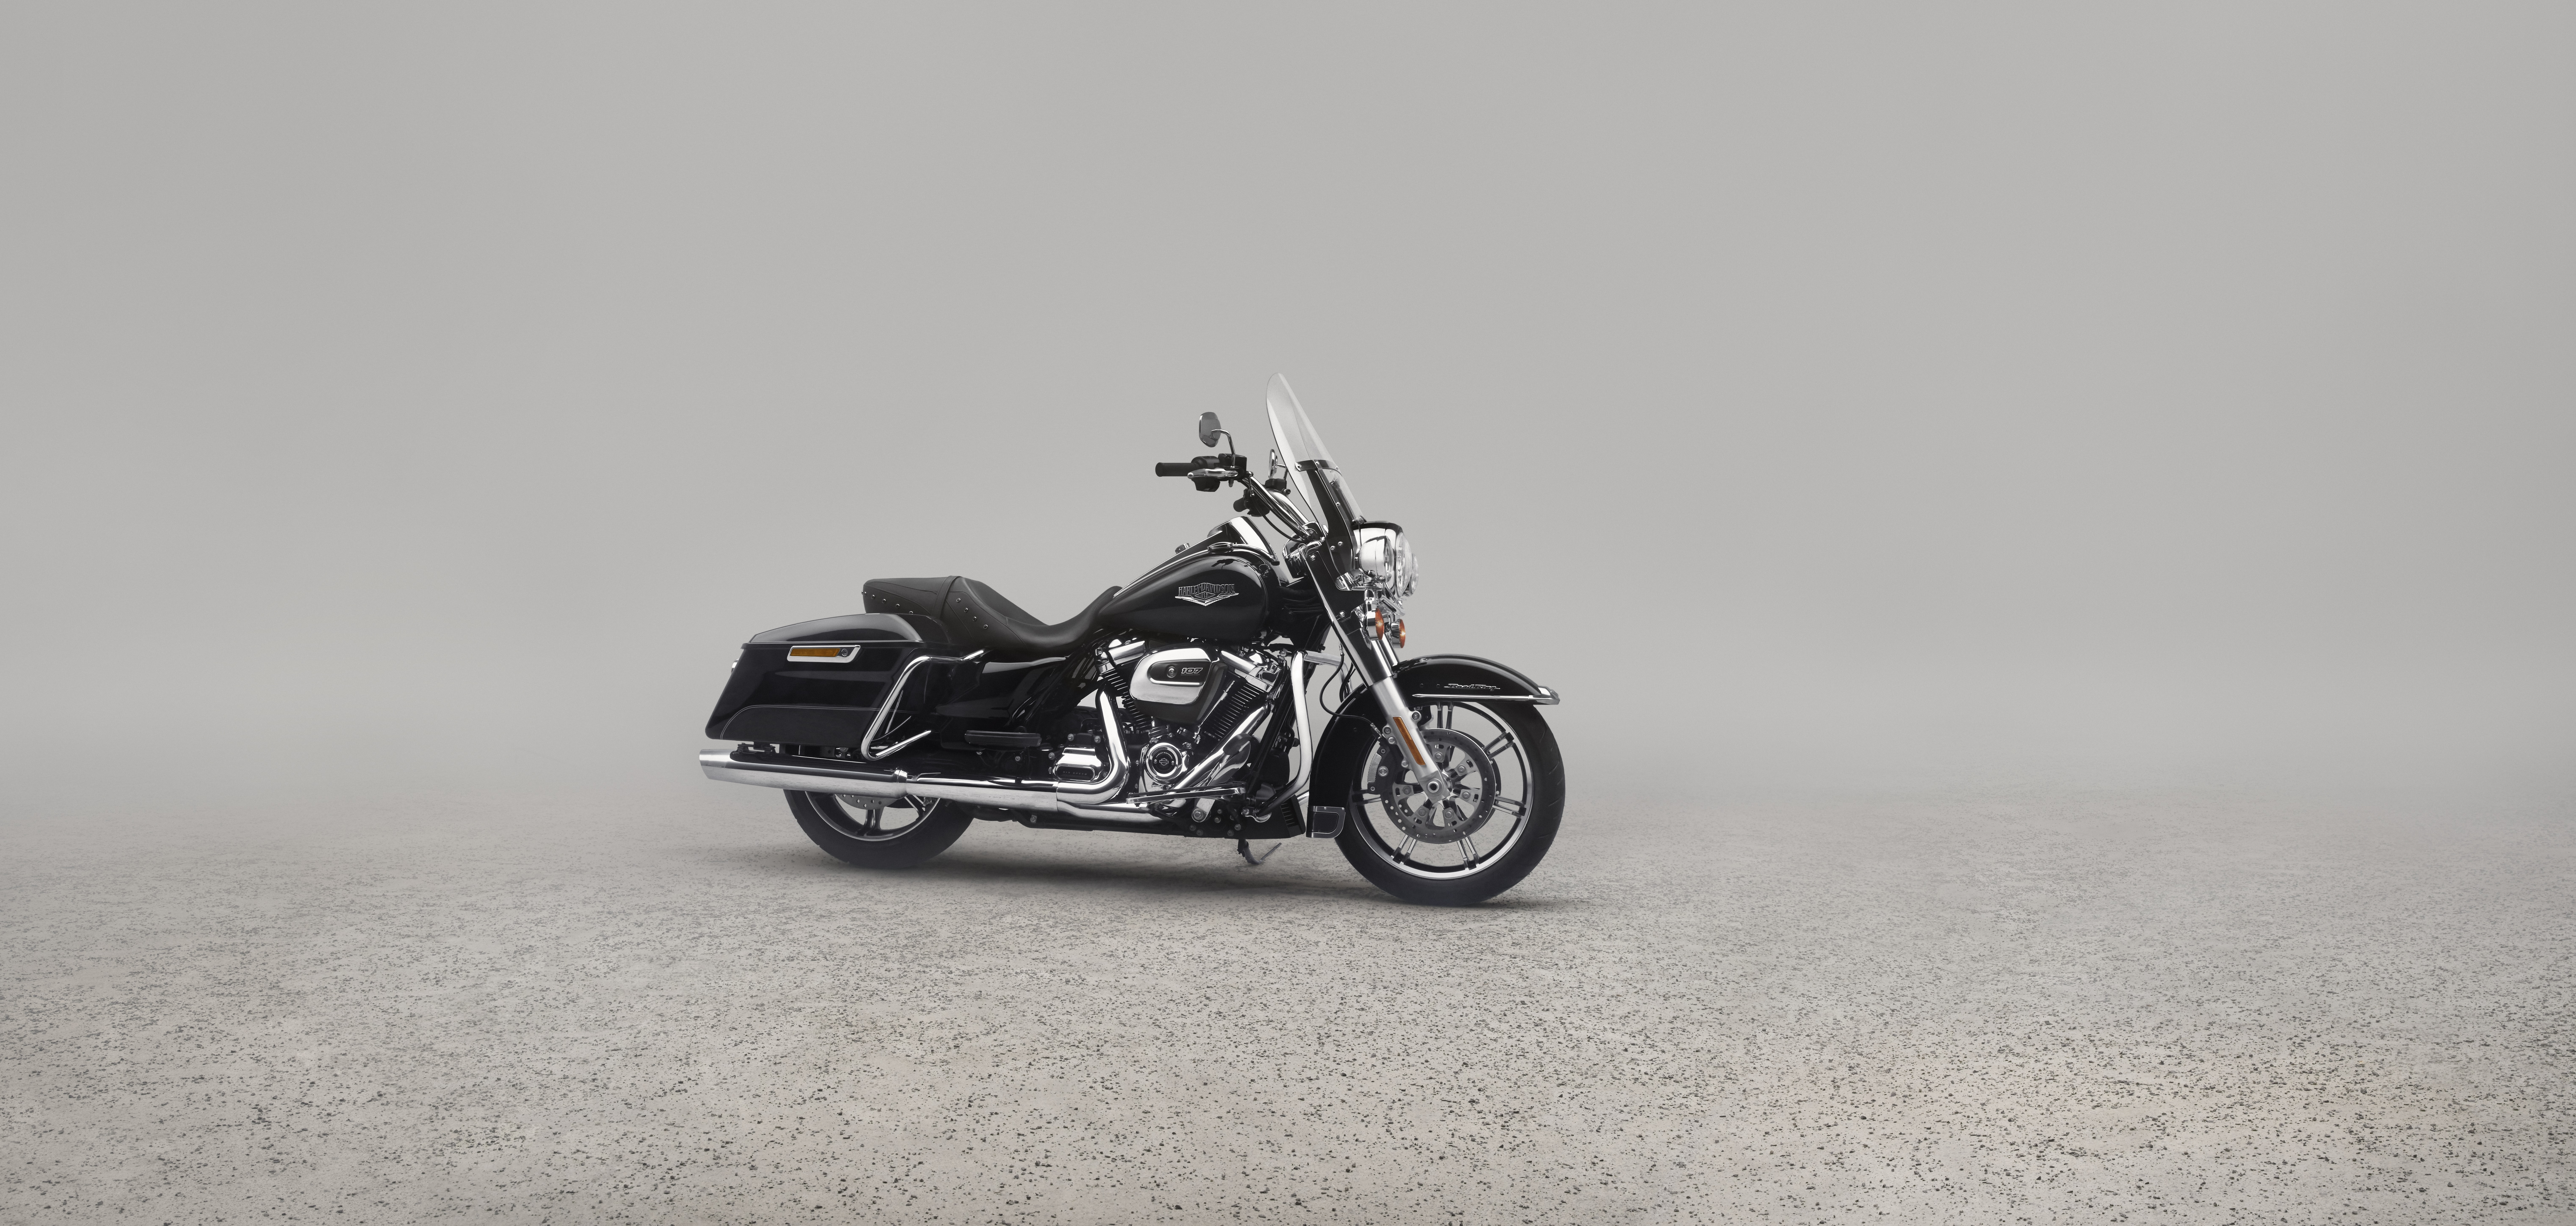 2020 Road King motorcycle